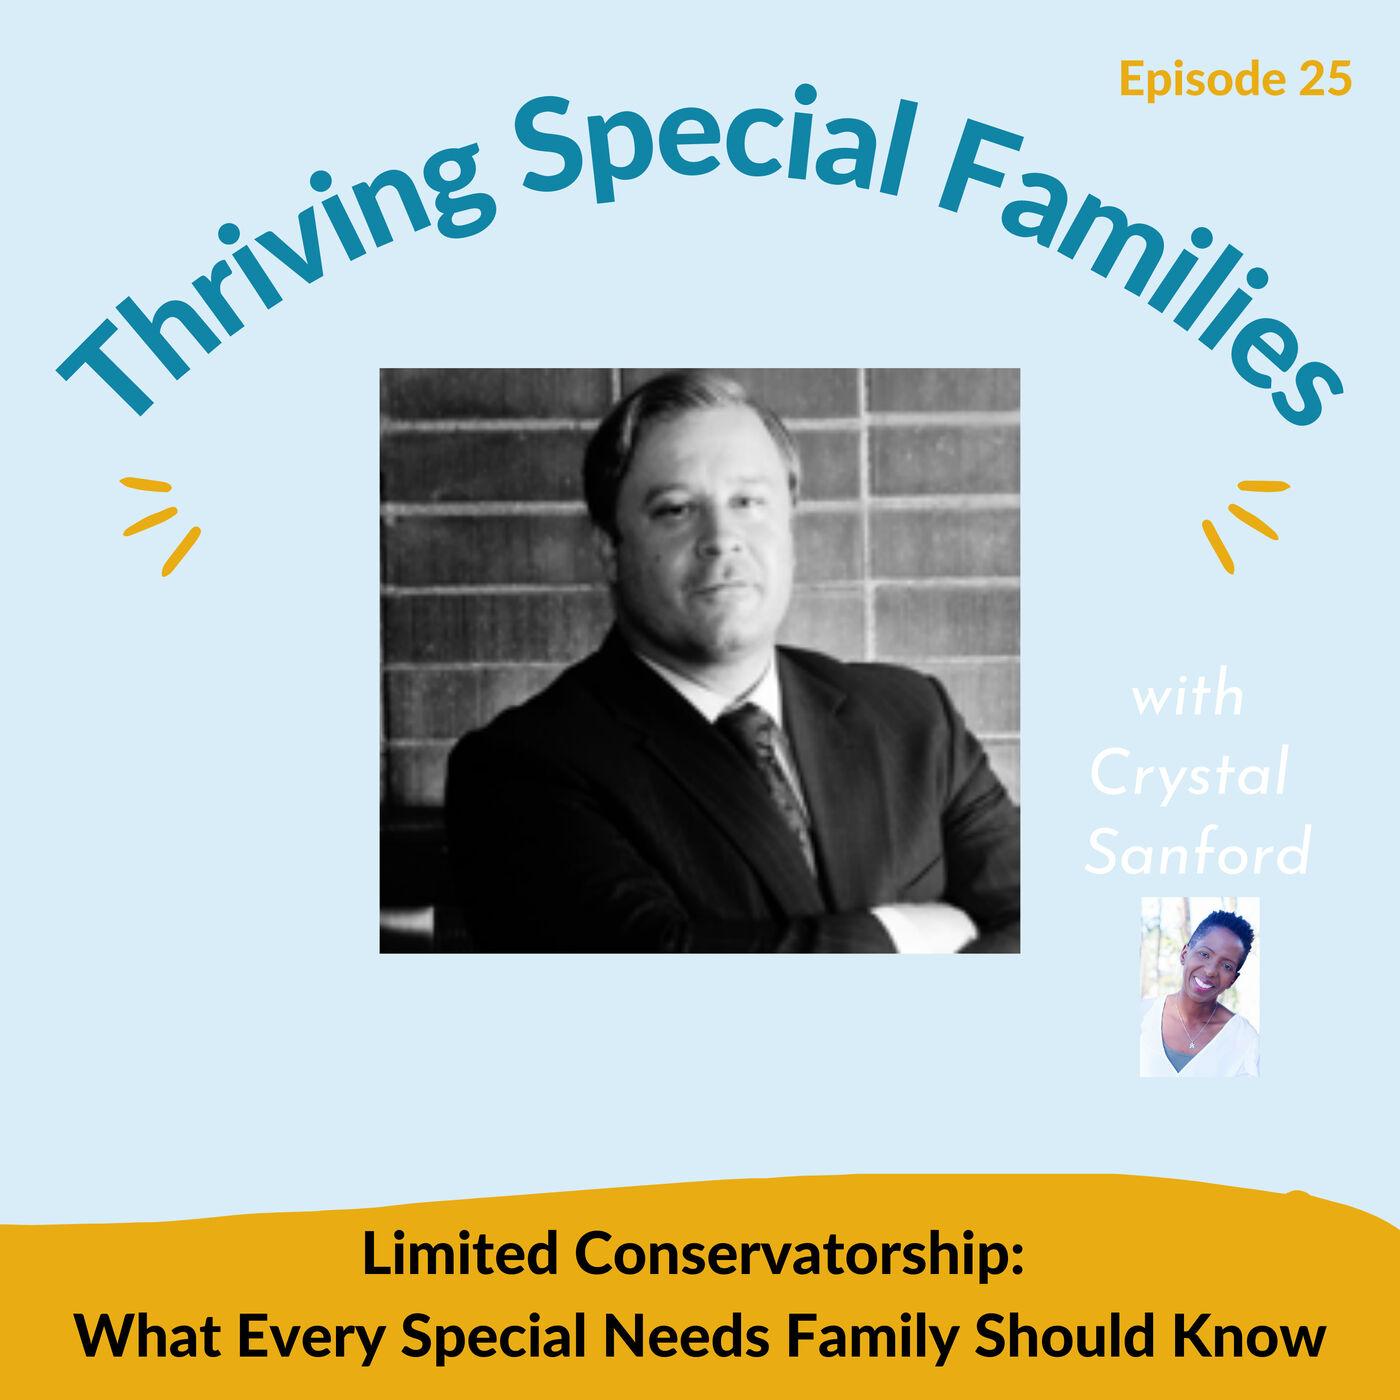 Limited Conservatorship: What Every Special Needs Family Should Know